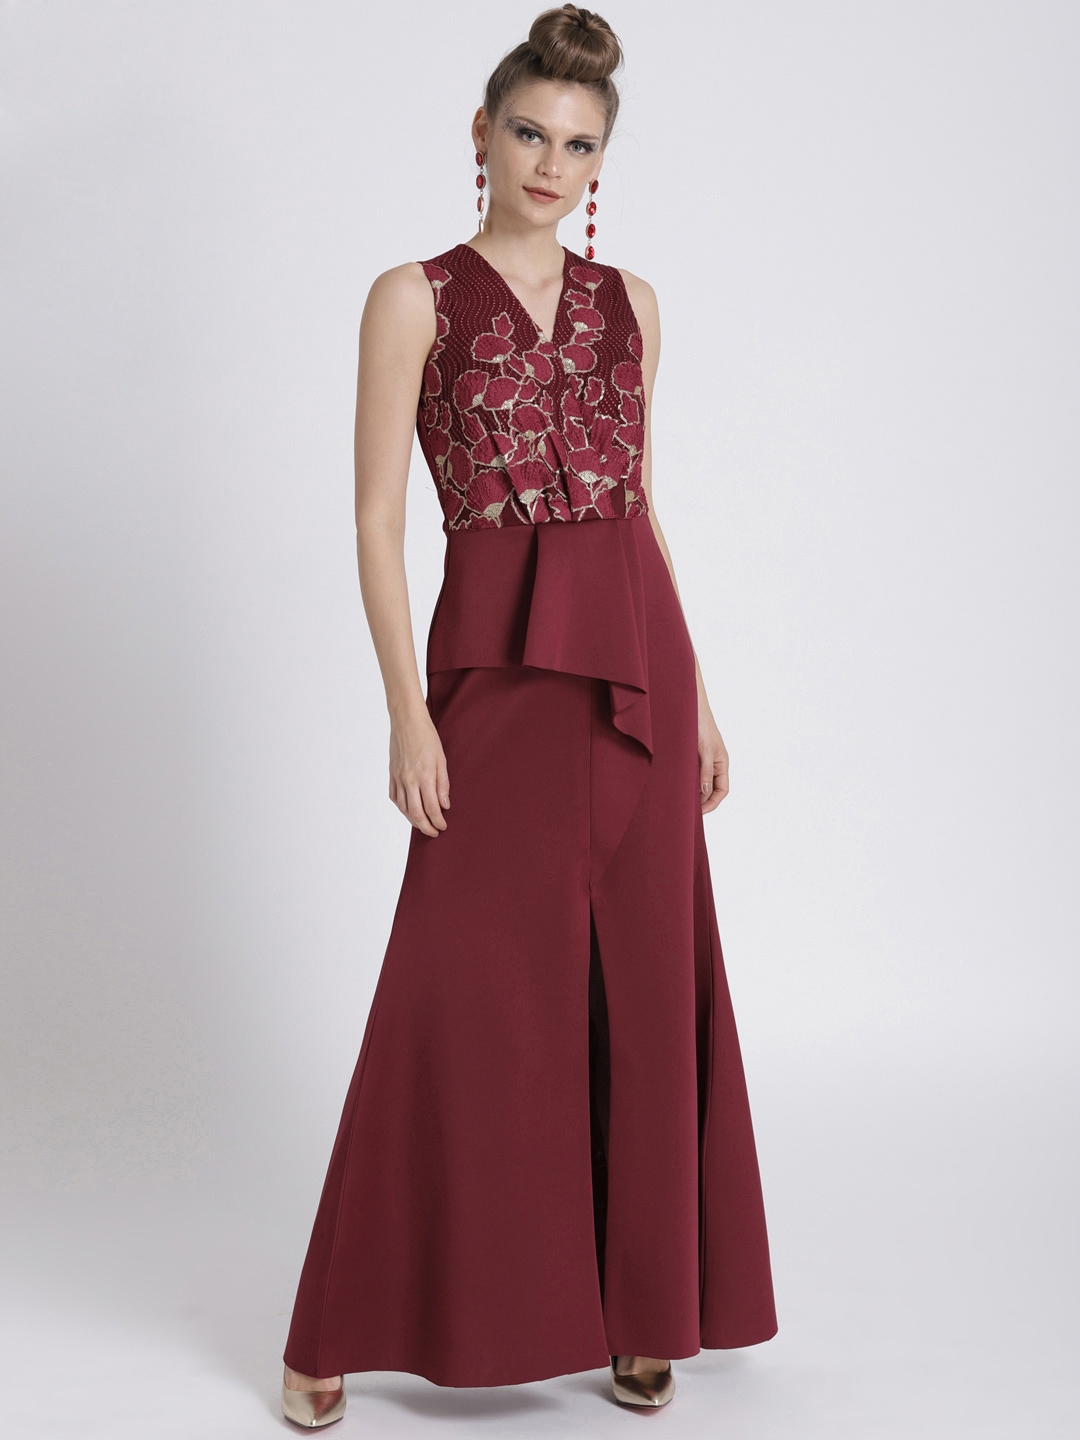 e5828d5ca1f Athena Burgundy Embellished Half Peplum Maxi Dress with Front Slit   Sheer  Back